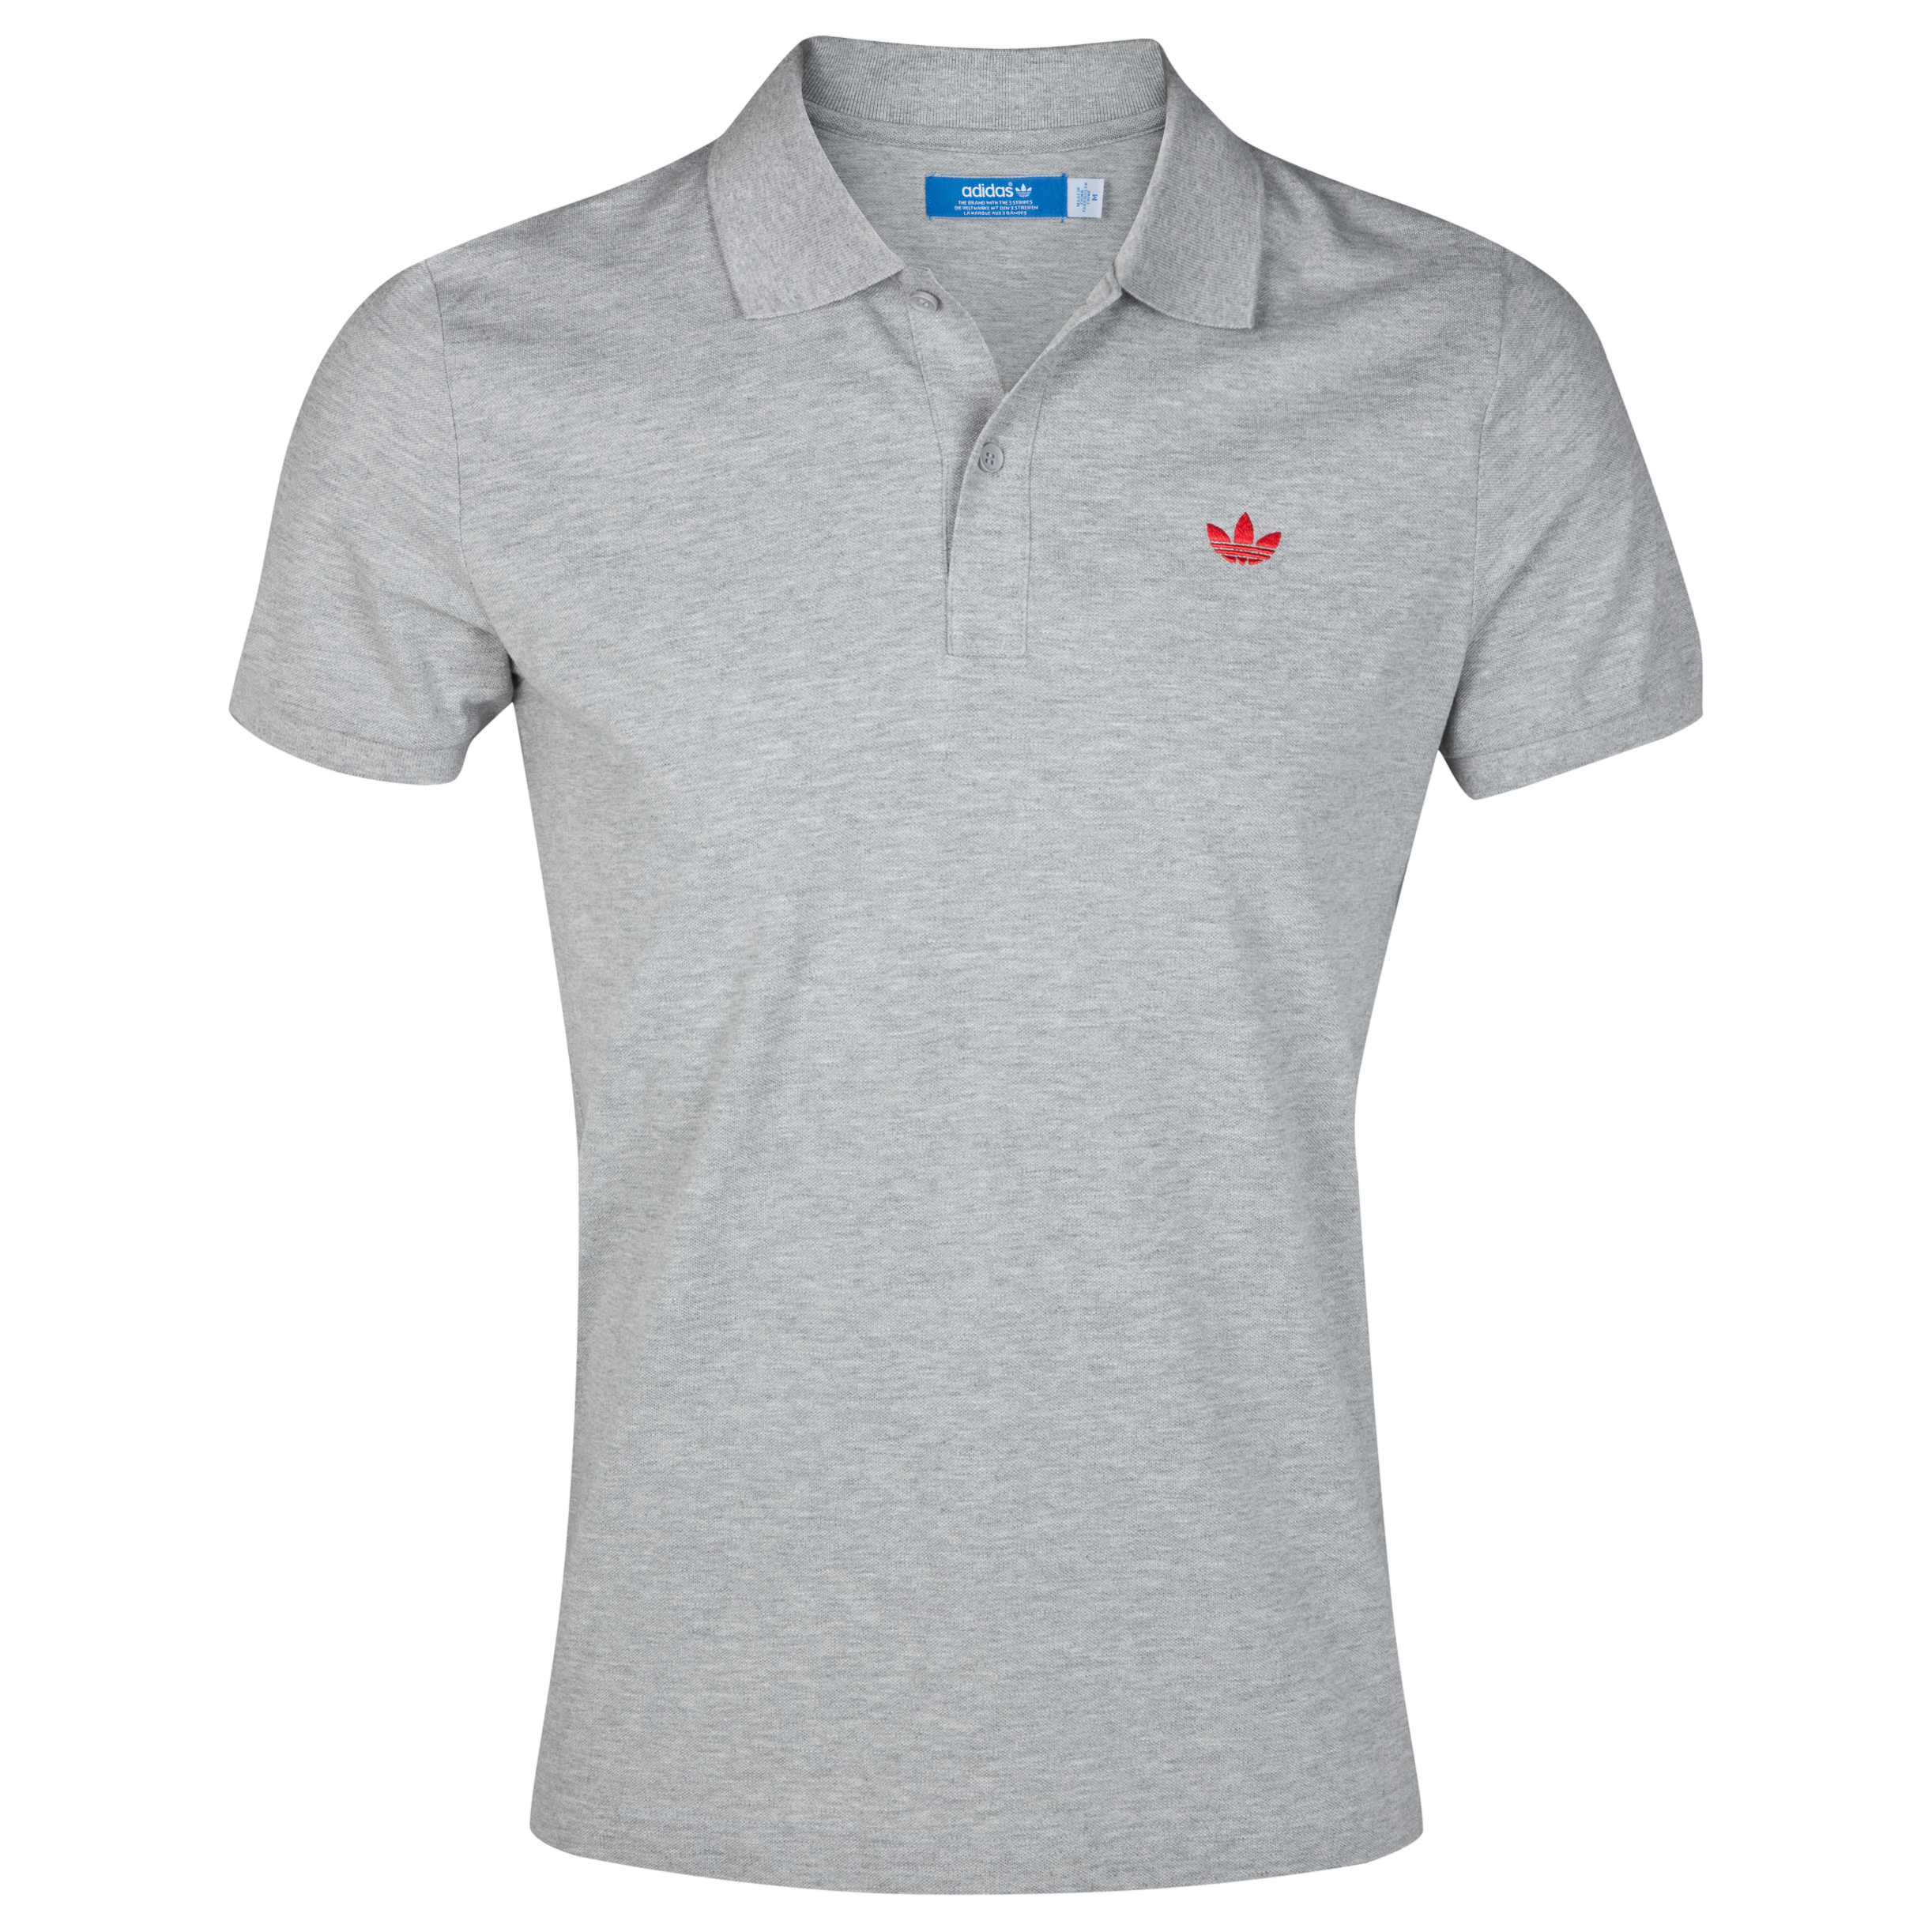 Originals Pique Polo - Medium Grey Heather